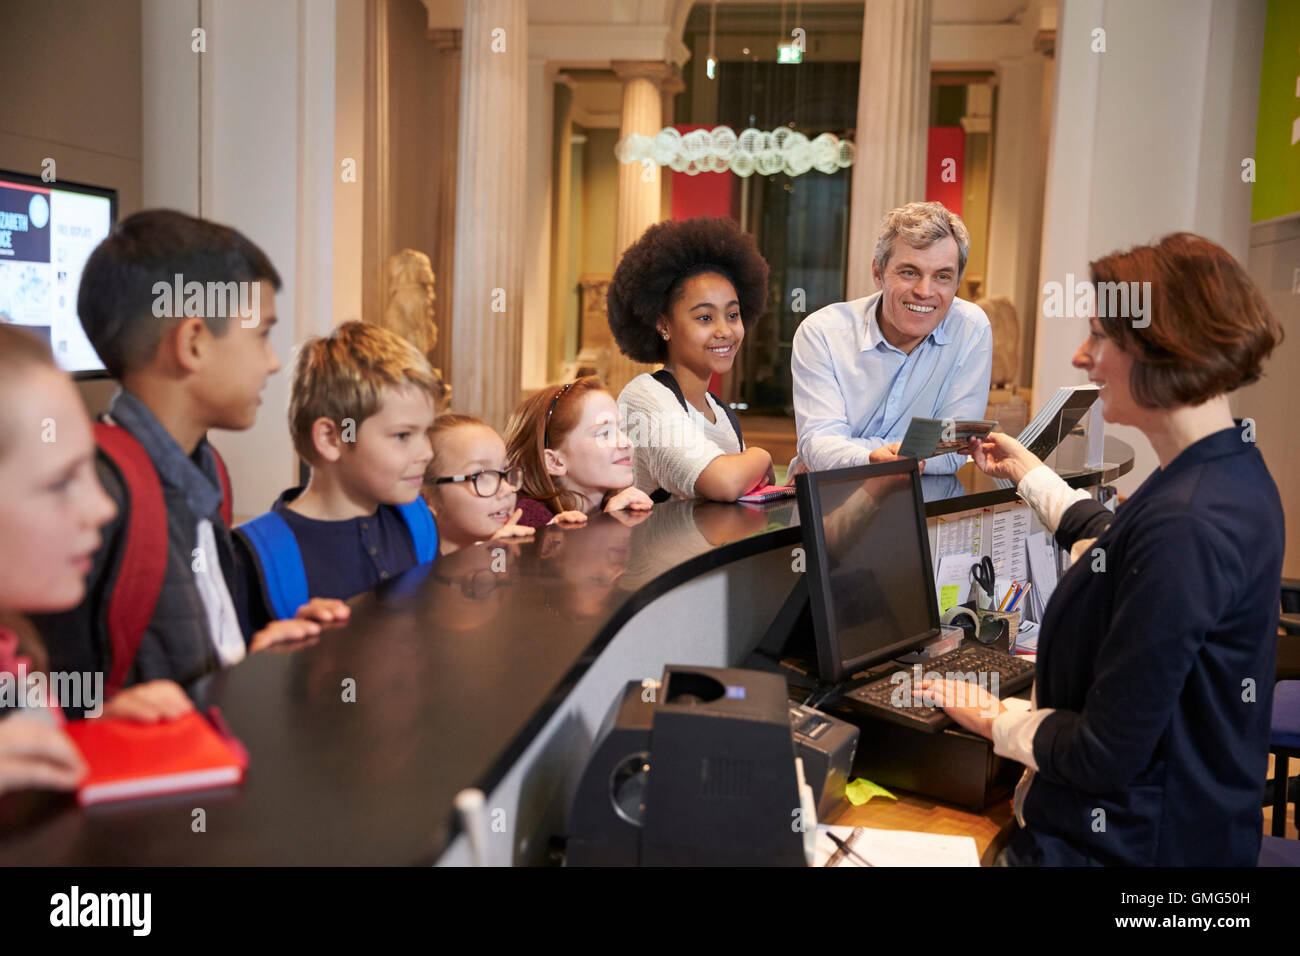 Class On School Trip Buying Entry Tickets To Museum - Stock Image